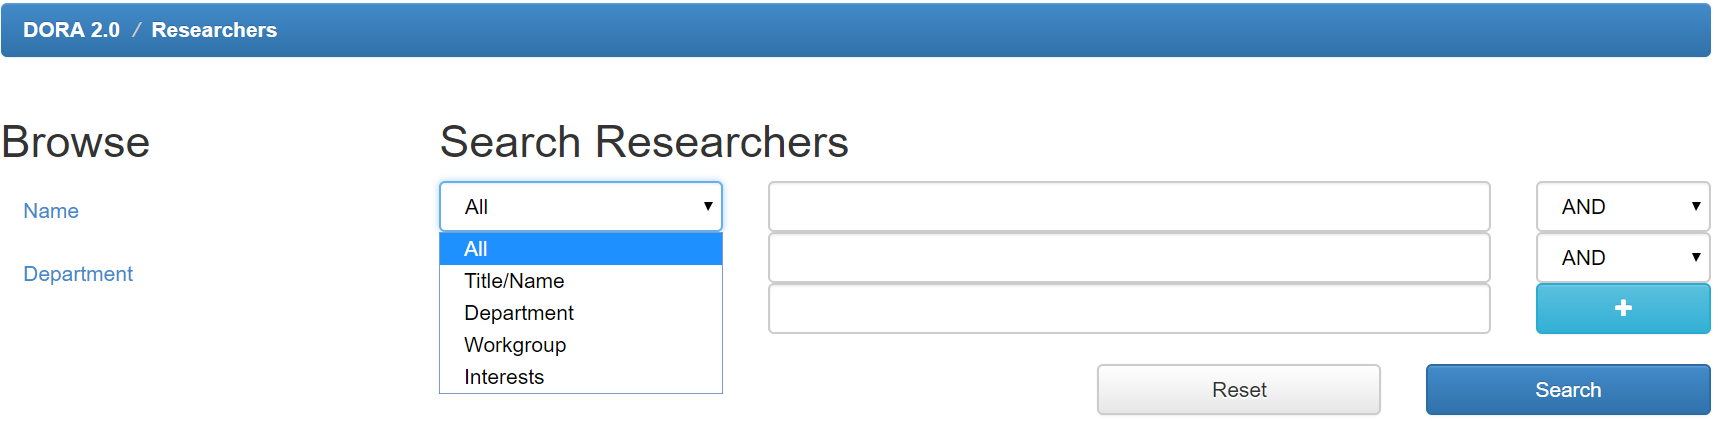 A screen for browsing researchers, looking at filtering options.